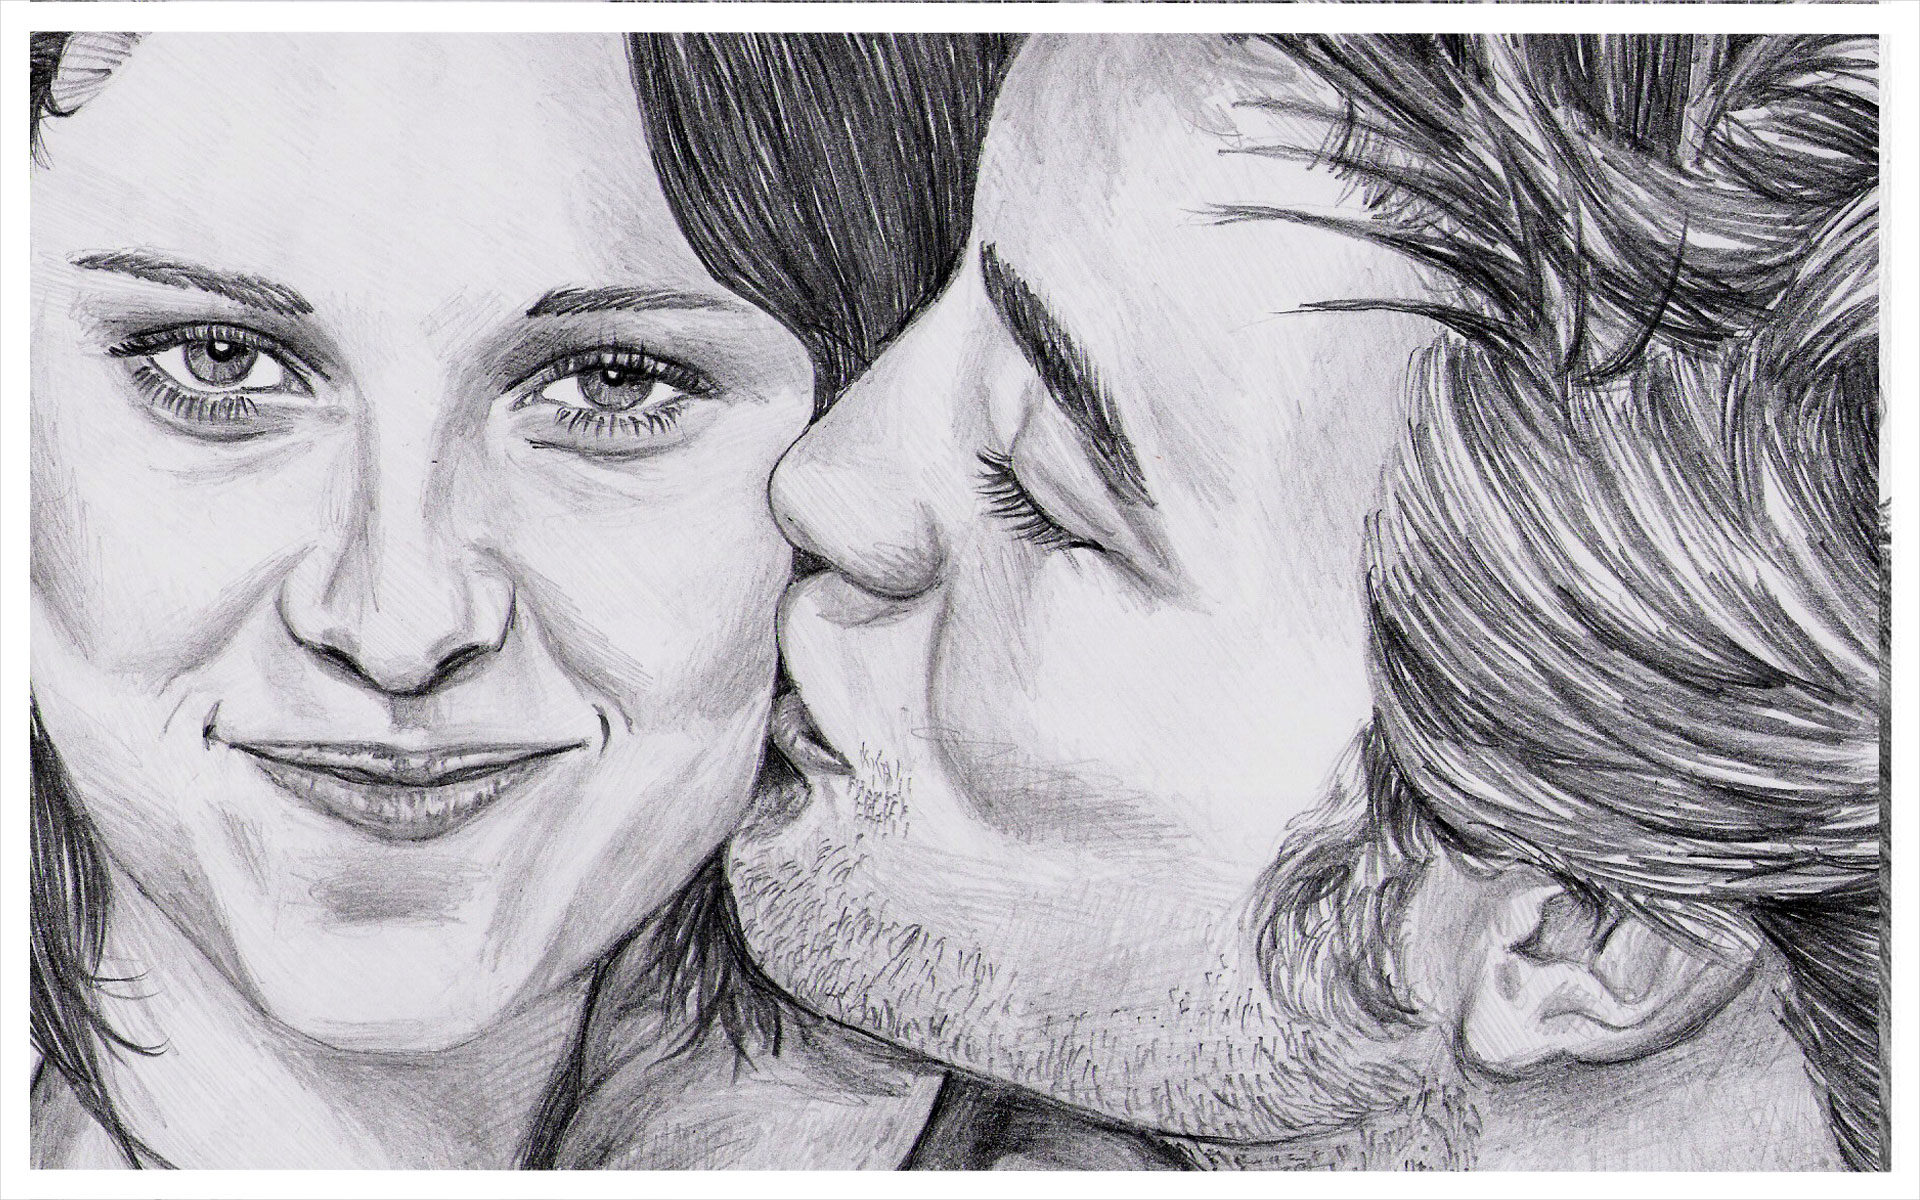 27+ Love Drawings, Pencil Drawings, Sketches Freecreatives